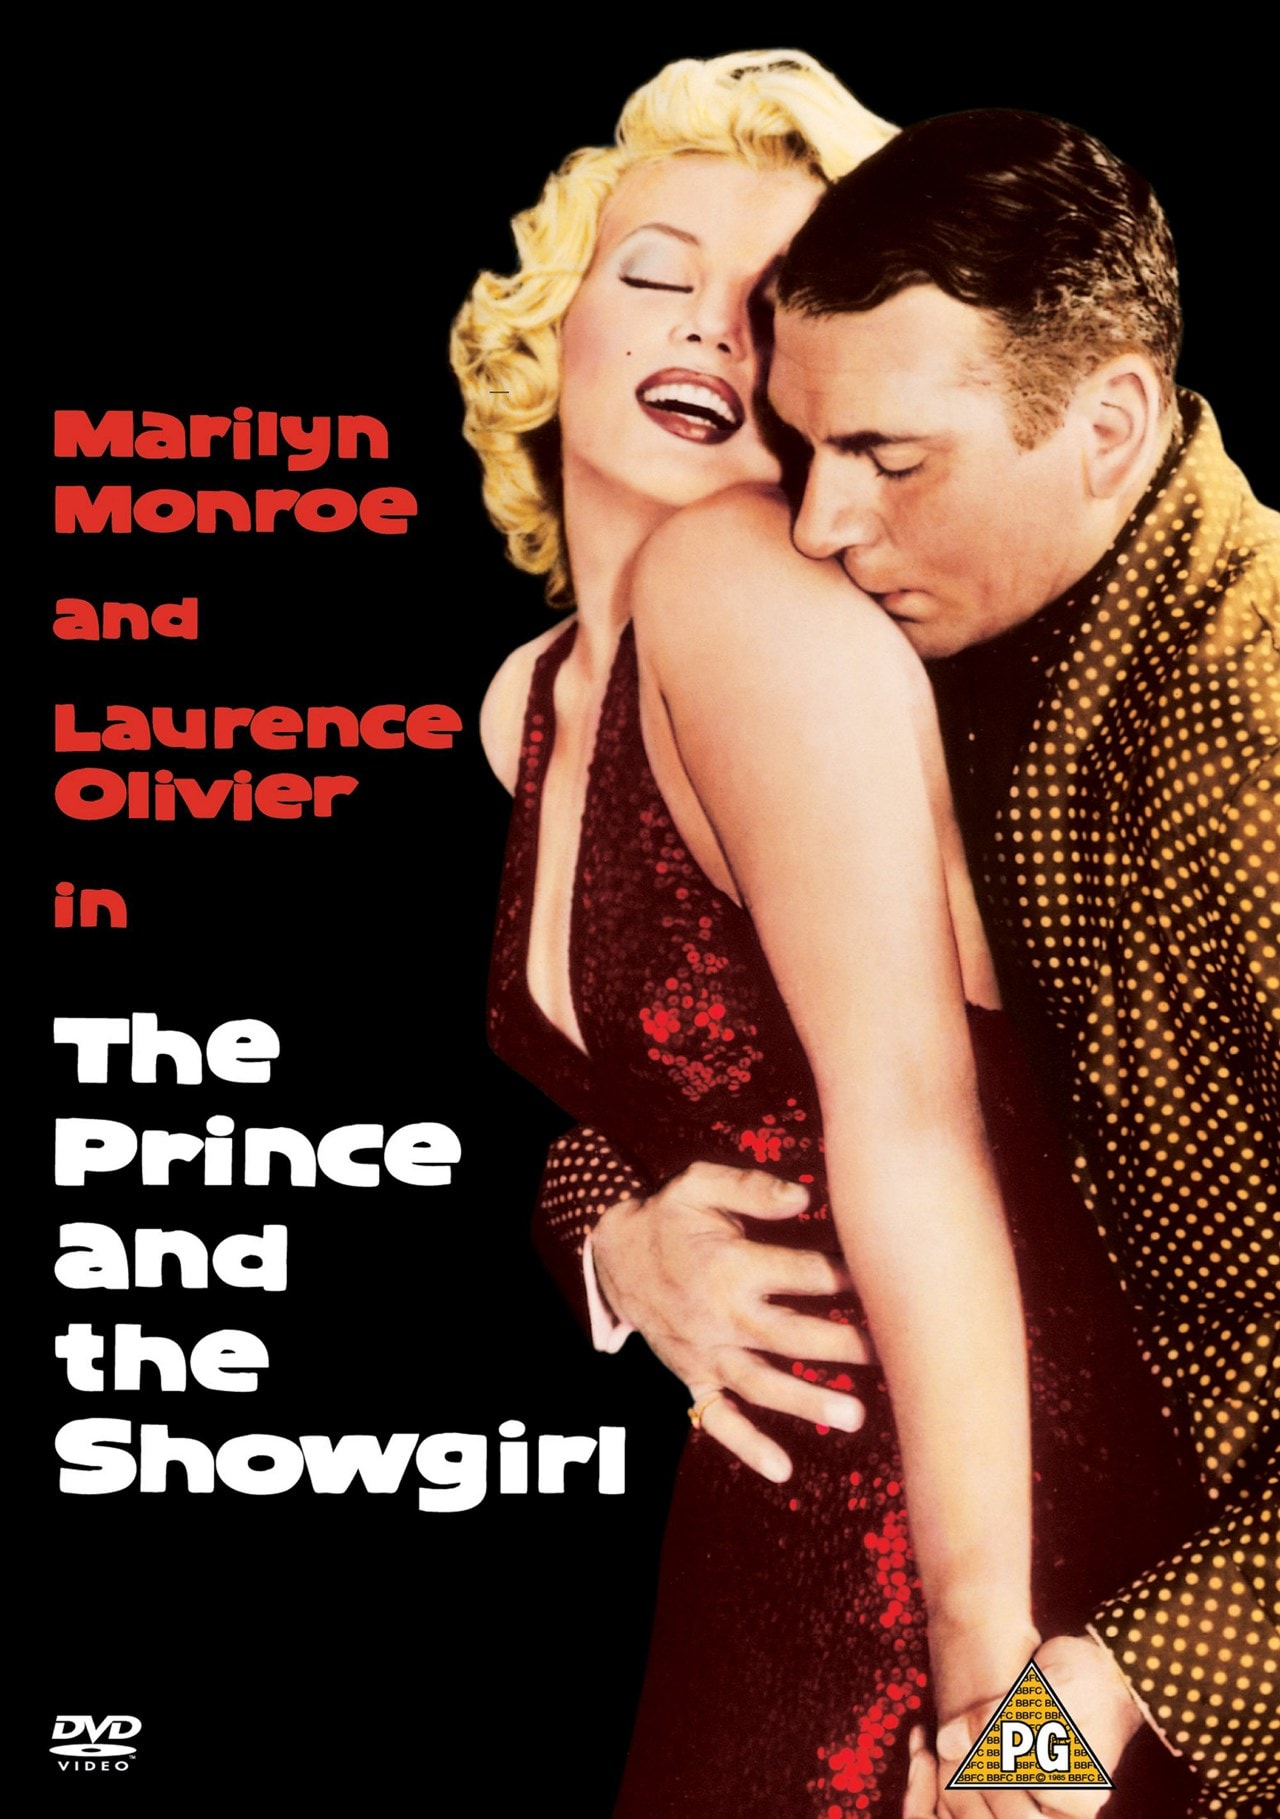 The Prince and the Showgirl - 1